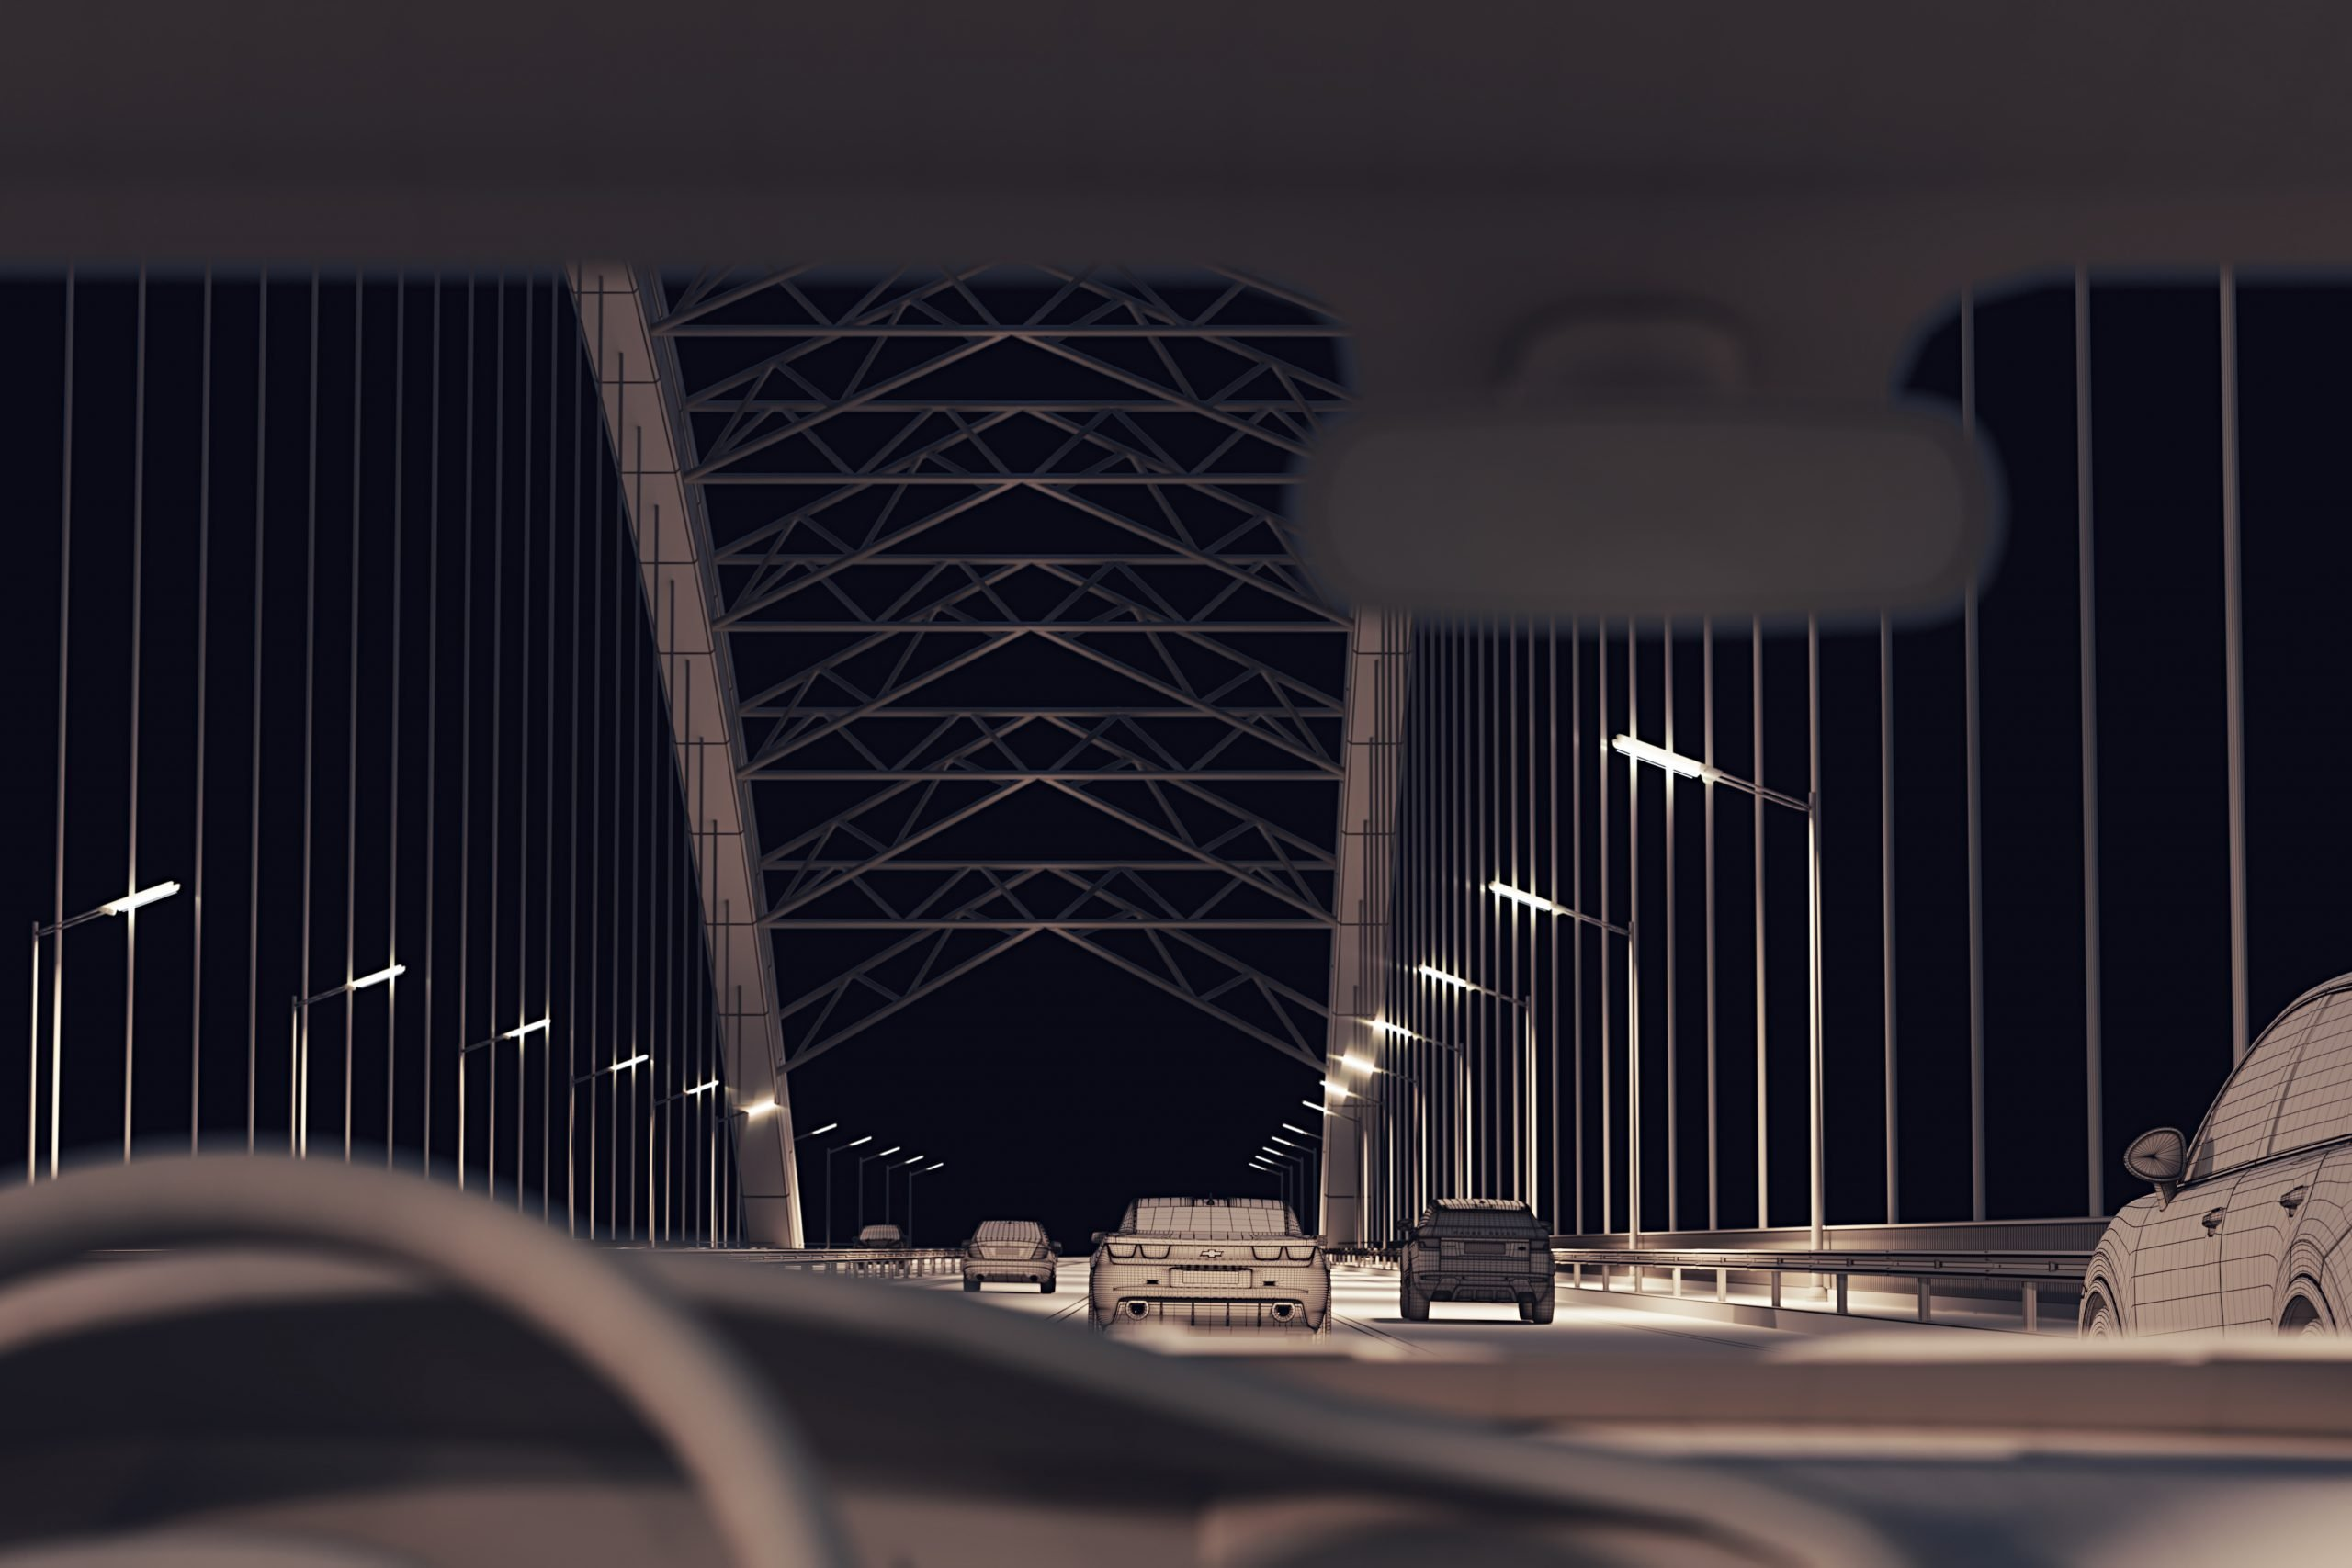 3D Modeling for a Second View of a Bridge